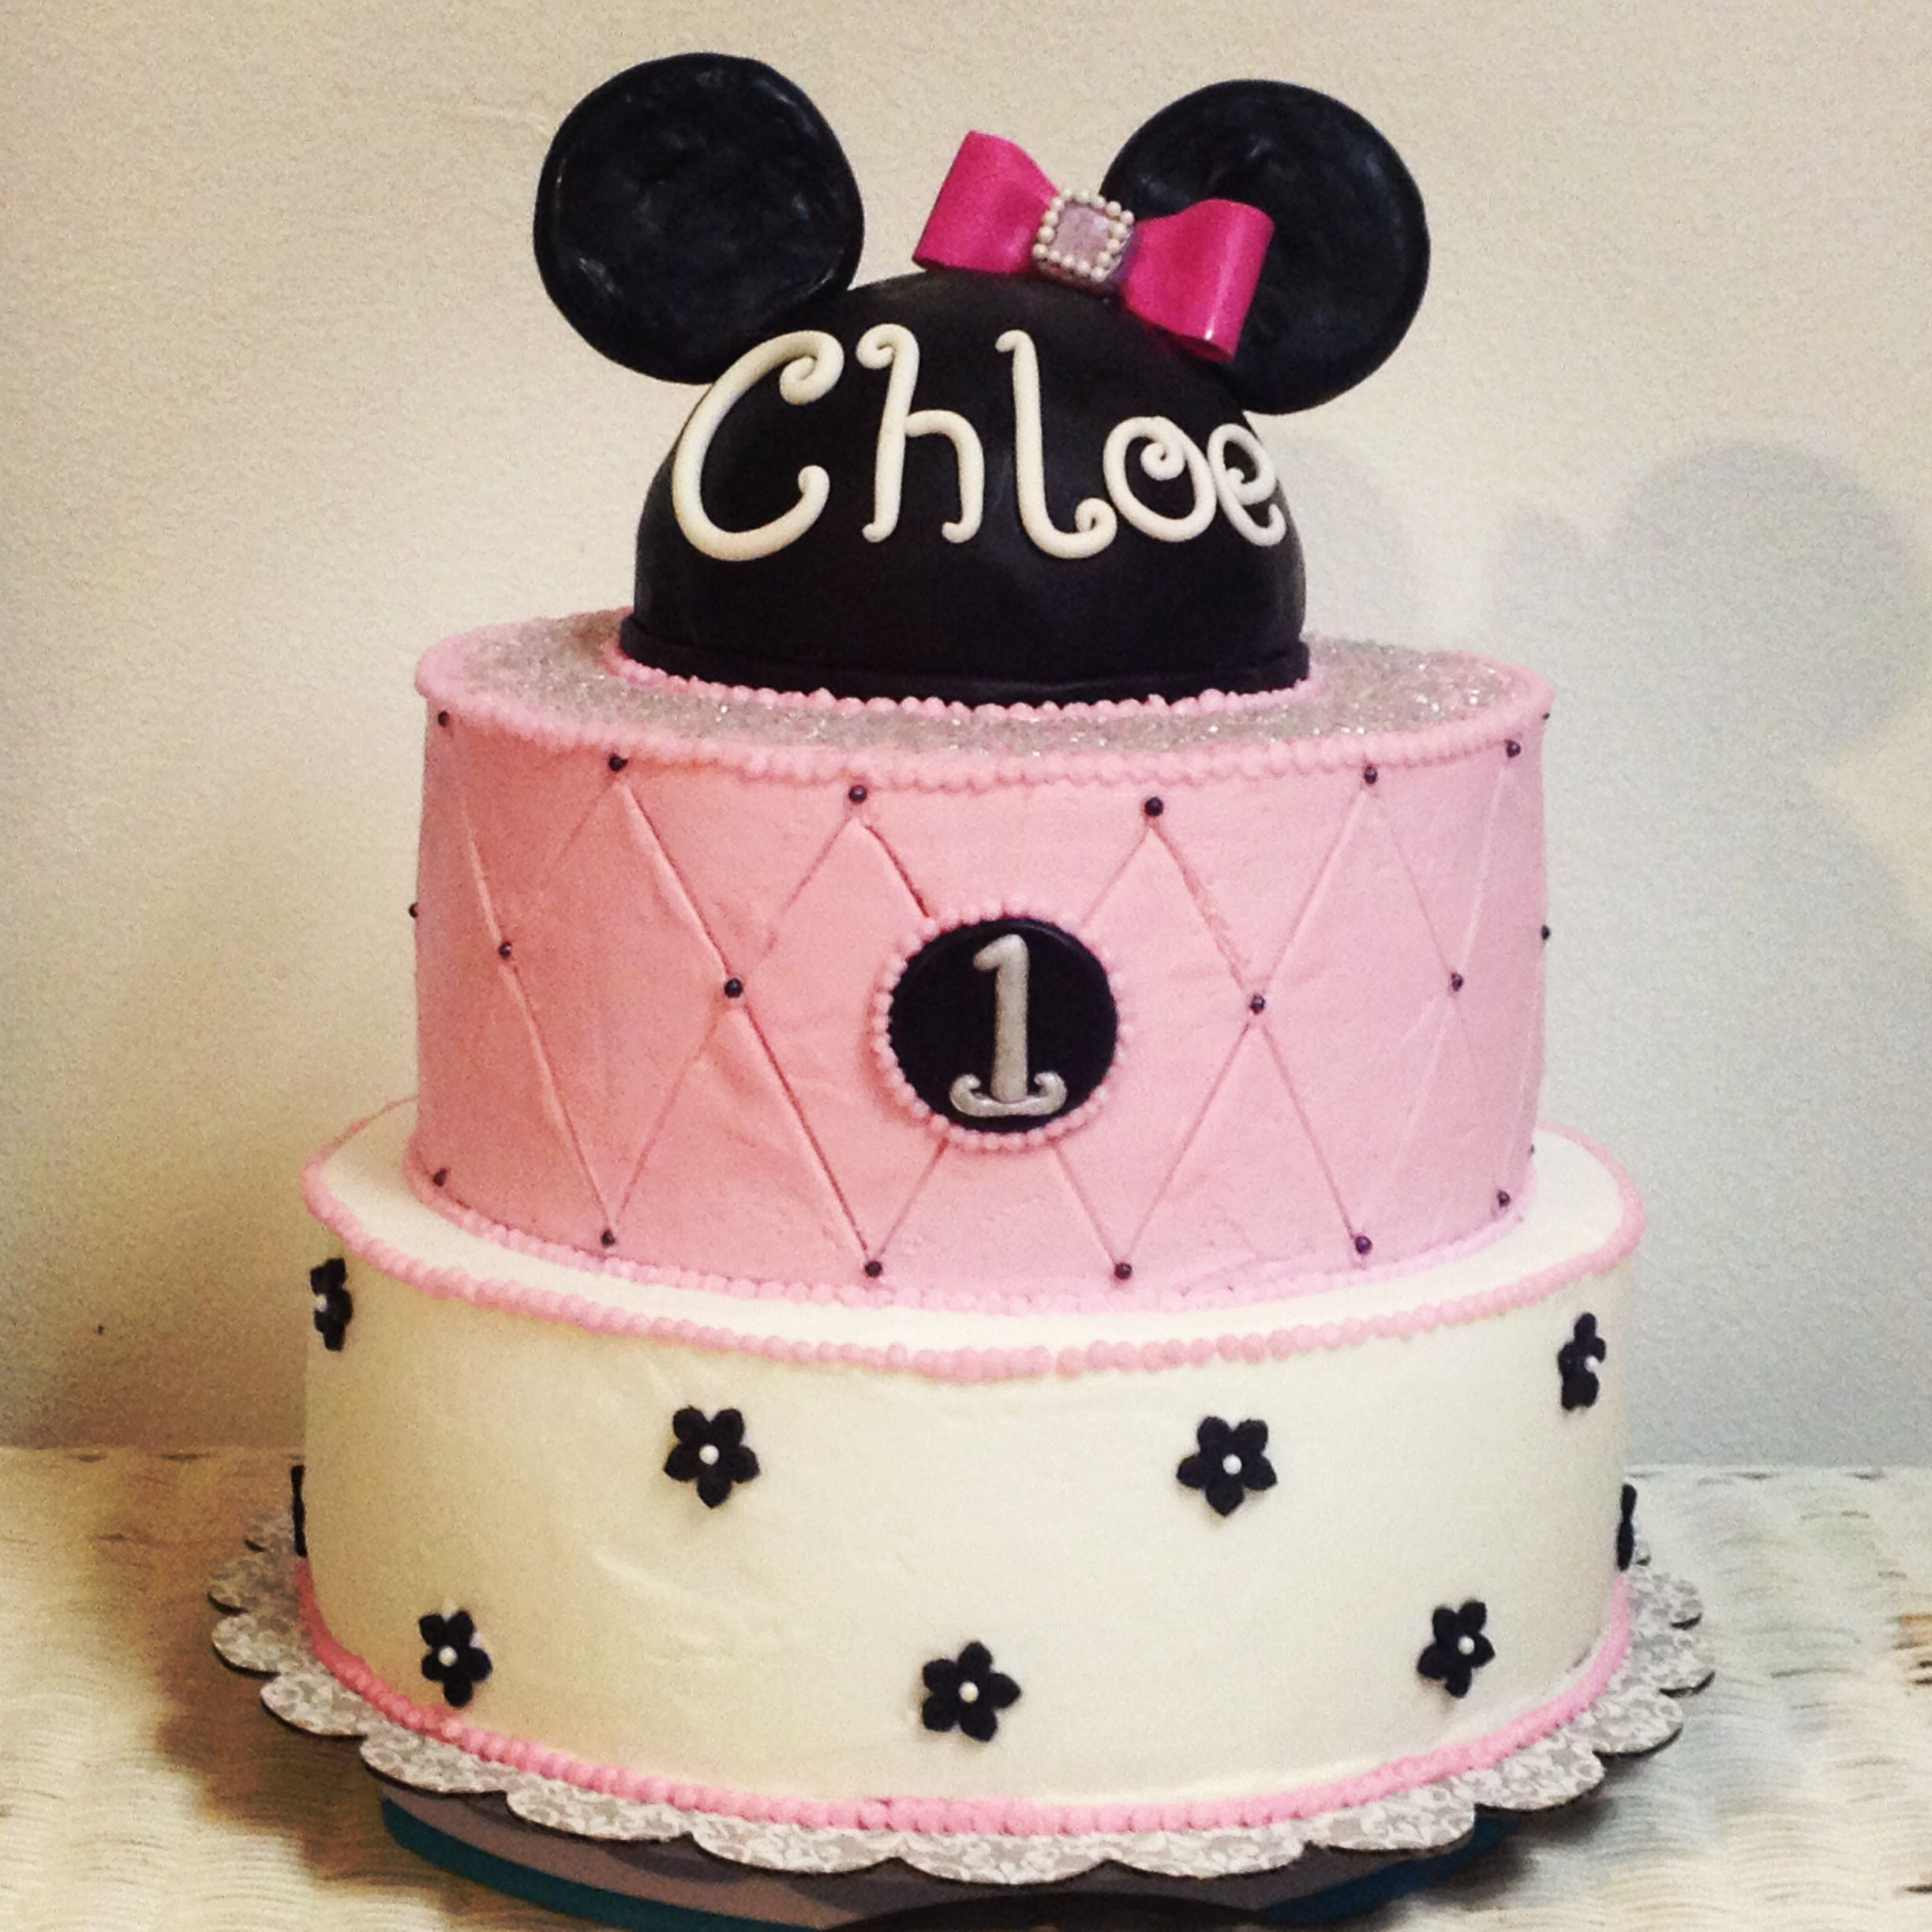 Minnie Themed Birthday Cake For A 1 Year Old Little Girl Sweet Art